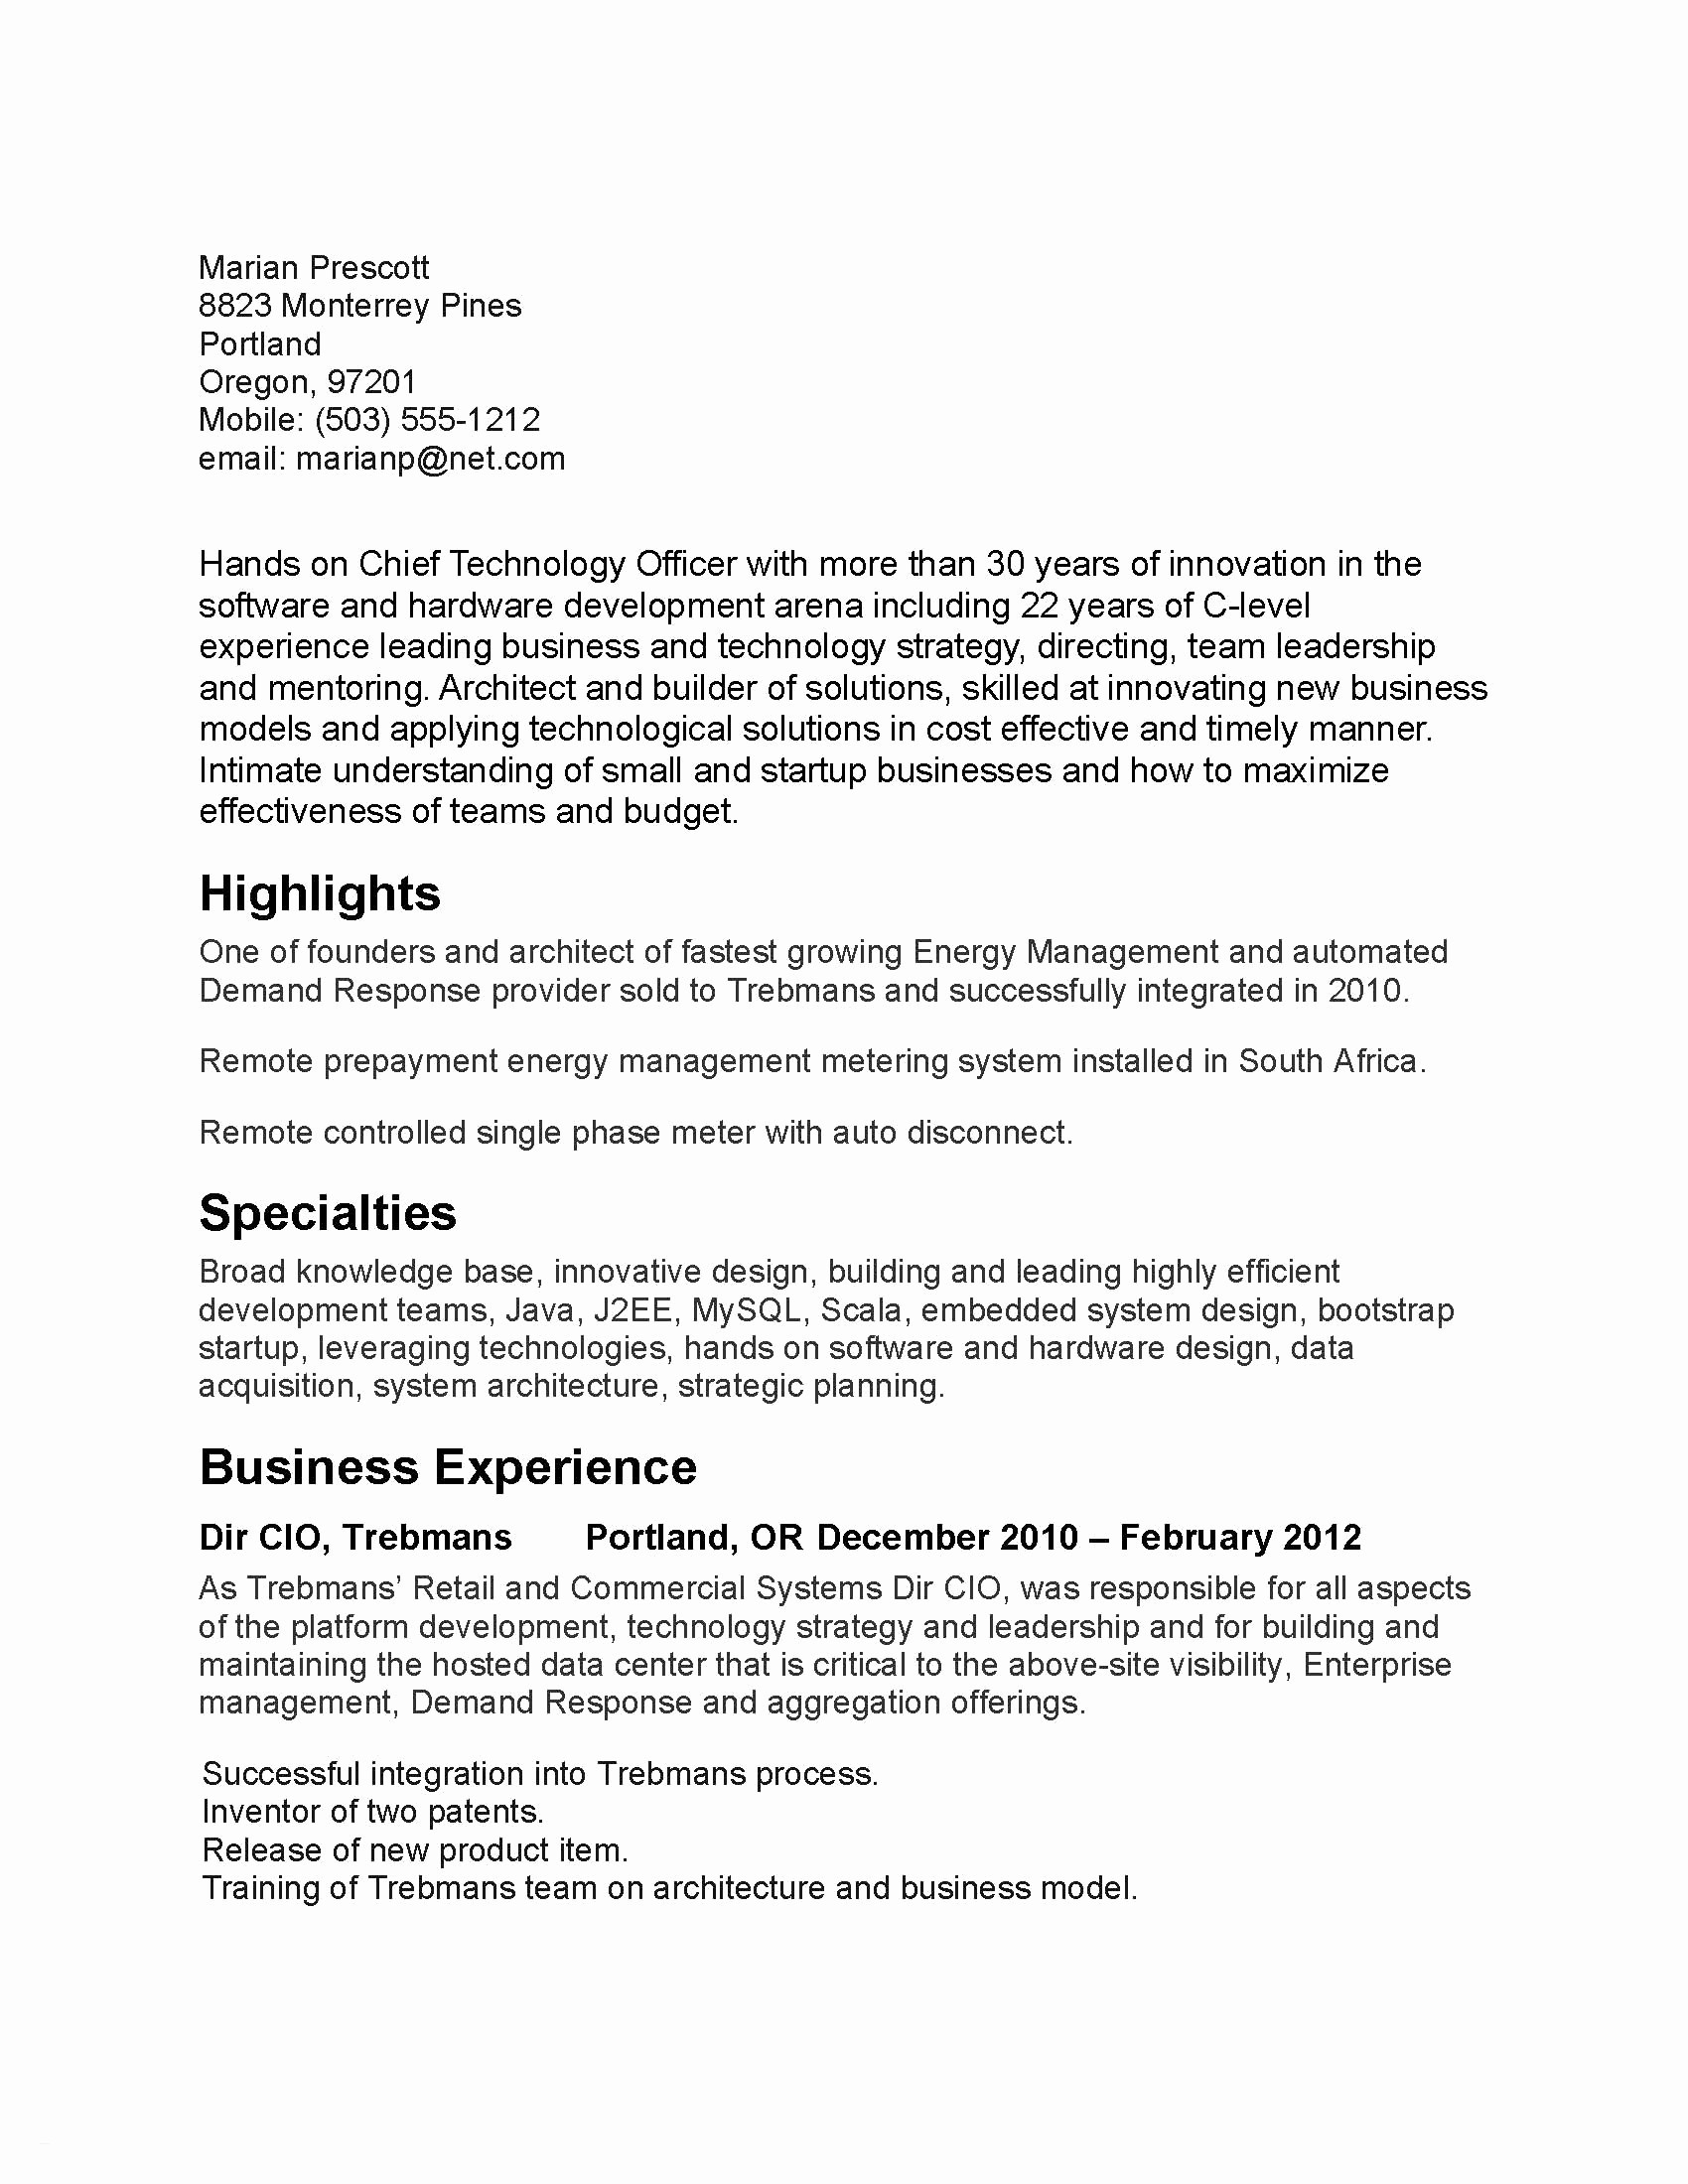 Paralegal Resume Skills - Leadership Skills for Resume Lovely Awesome Research Skills Resume